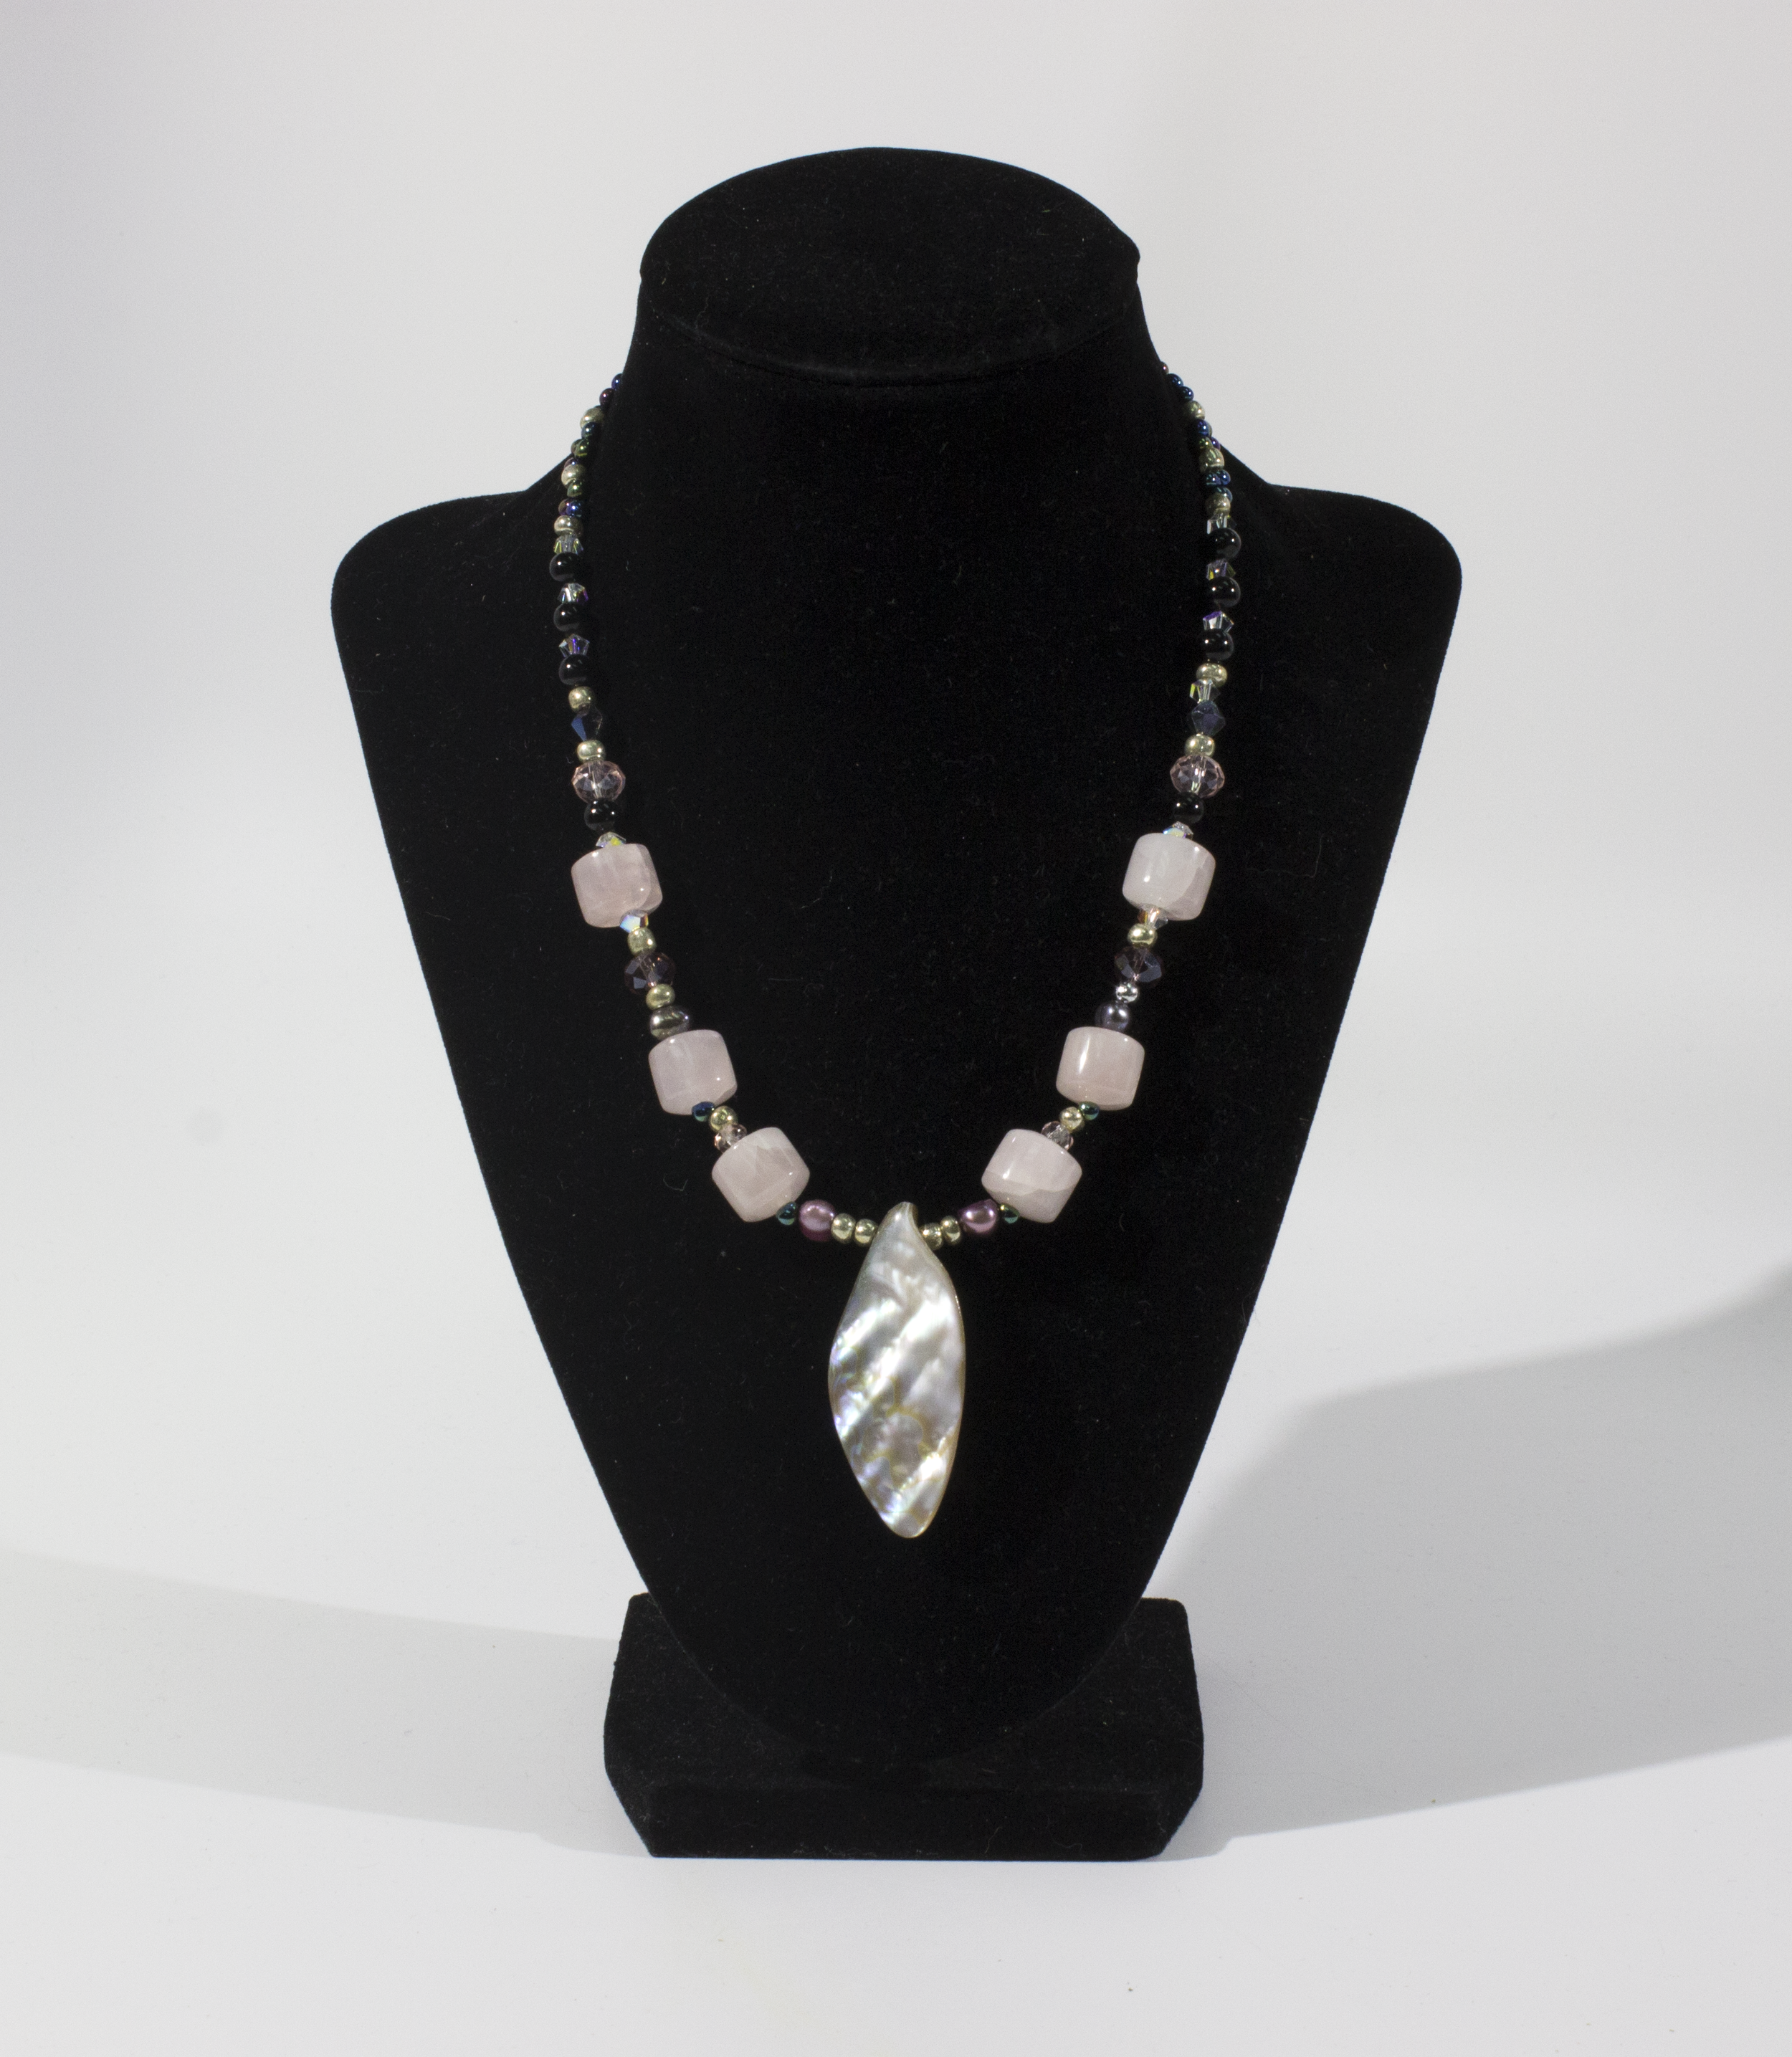 Necklace with Rose Quartz, Black Agate, Swarovski Crystals, Mother of Pearl, and Genuine Pearls. 2018.